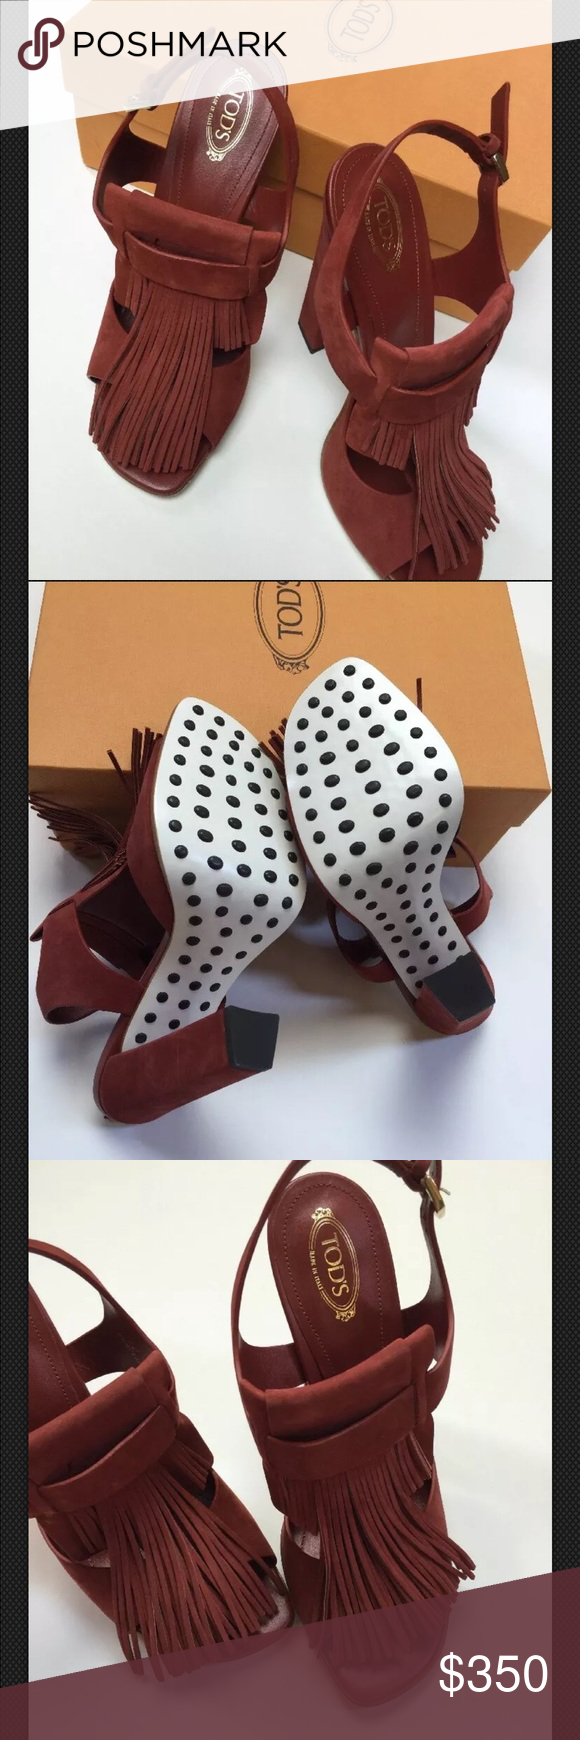 3d5f2aec15ffe5 NWT Tod s fringe maroon heels shoes Tod s women s summer sandals ...